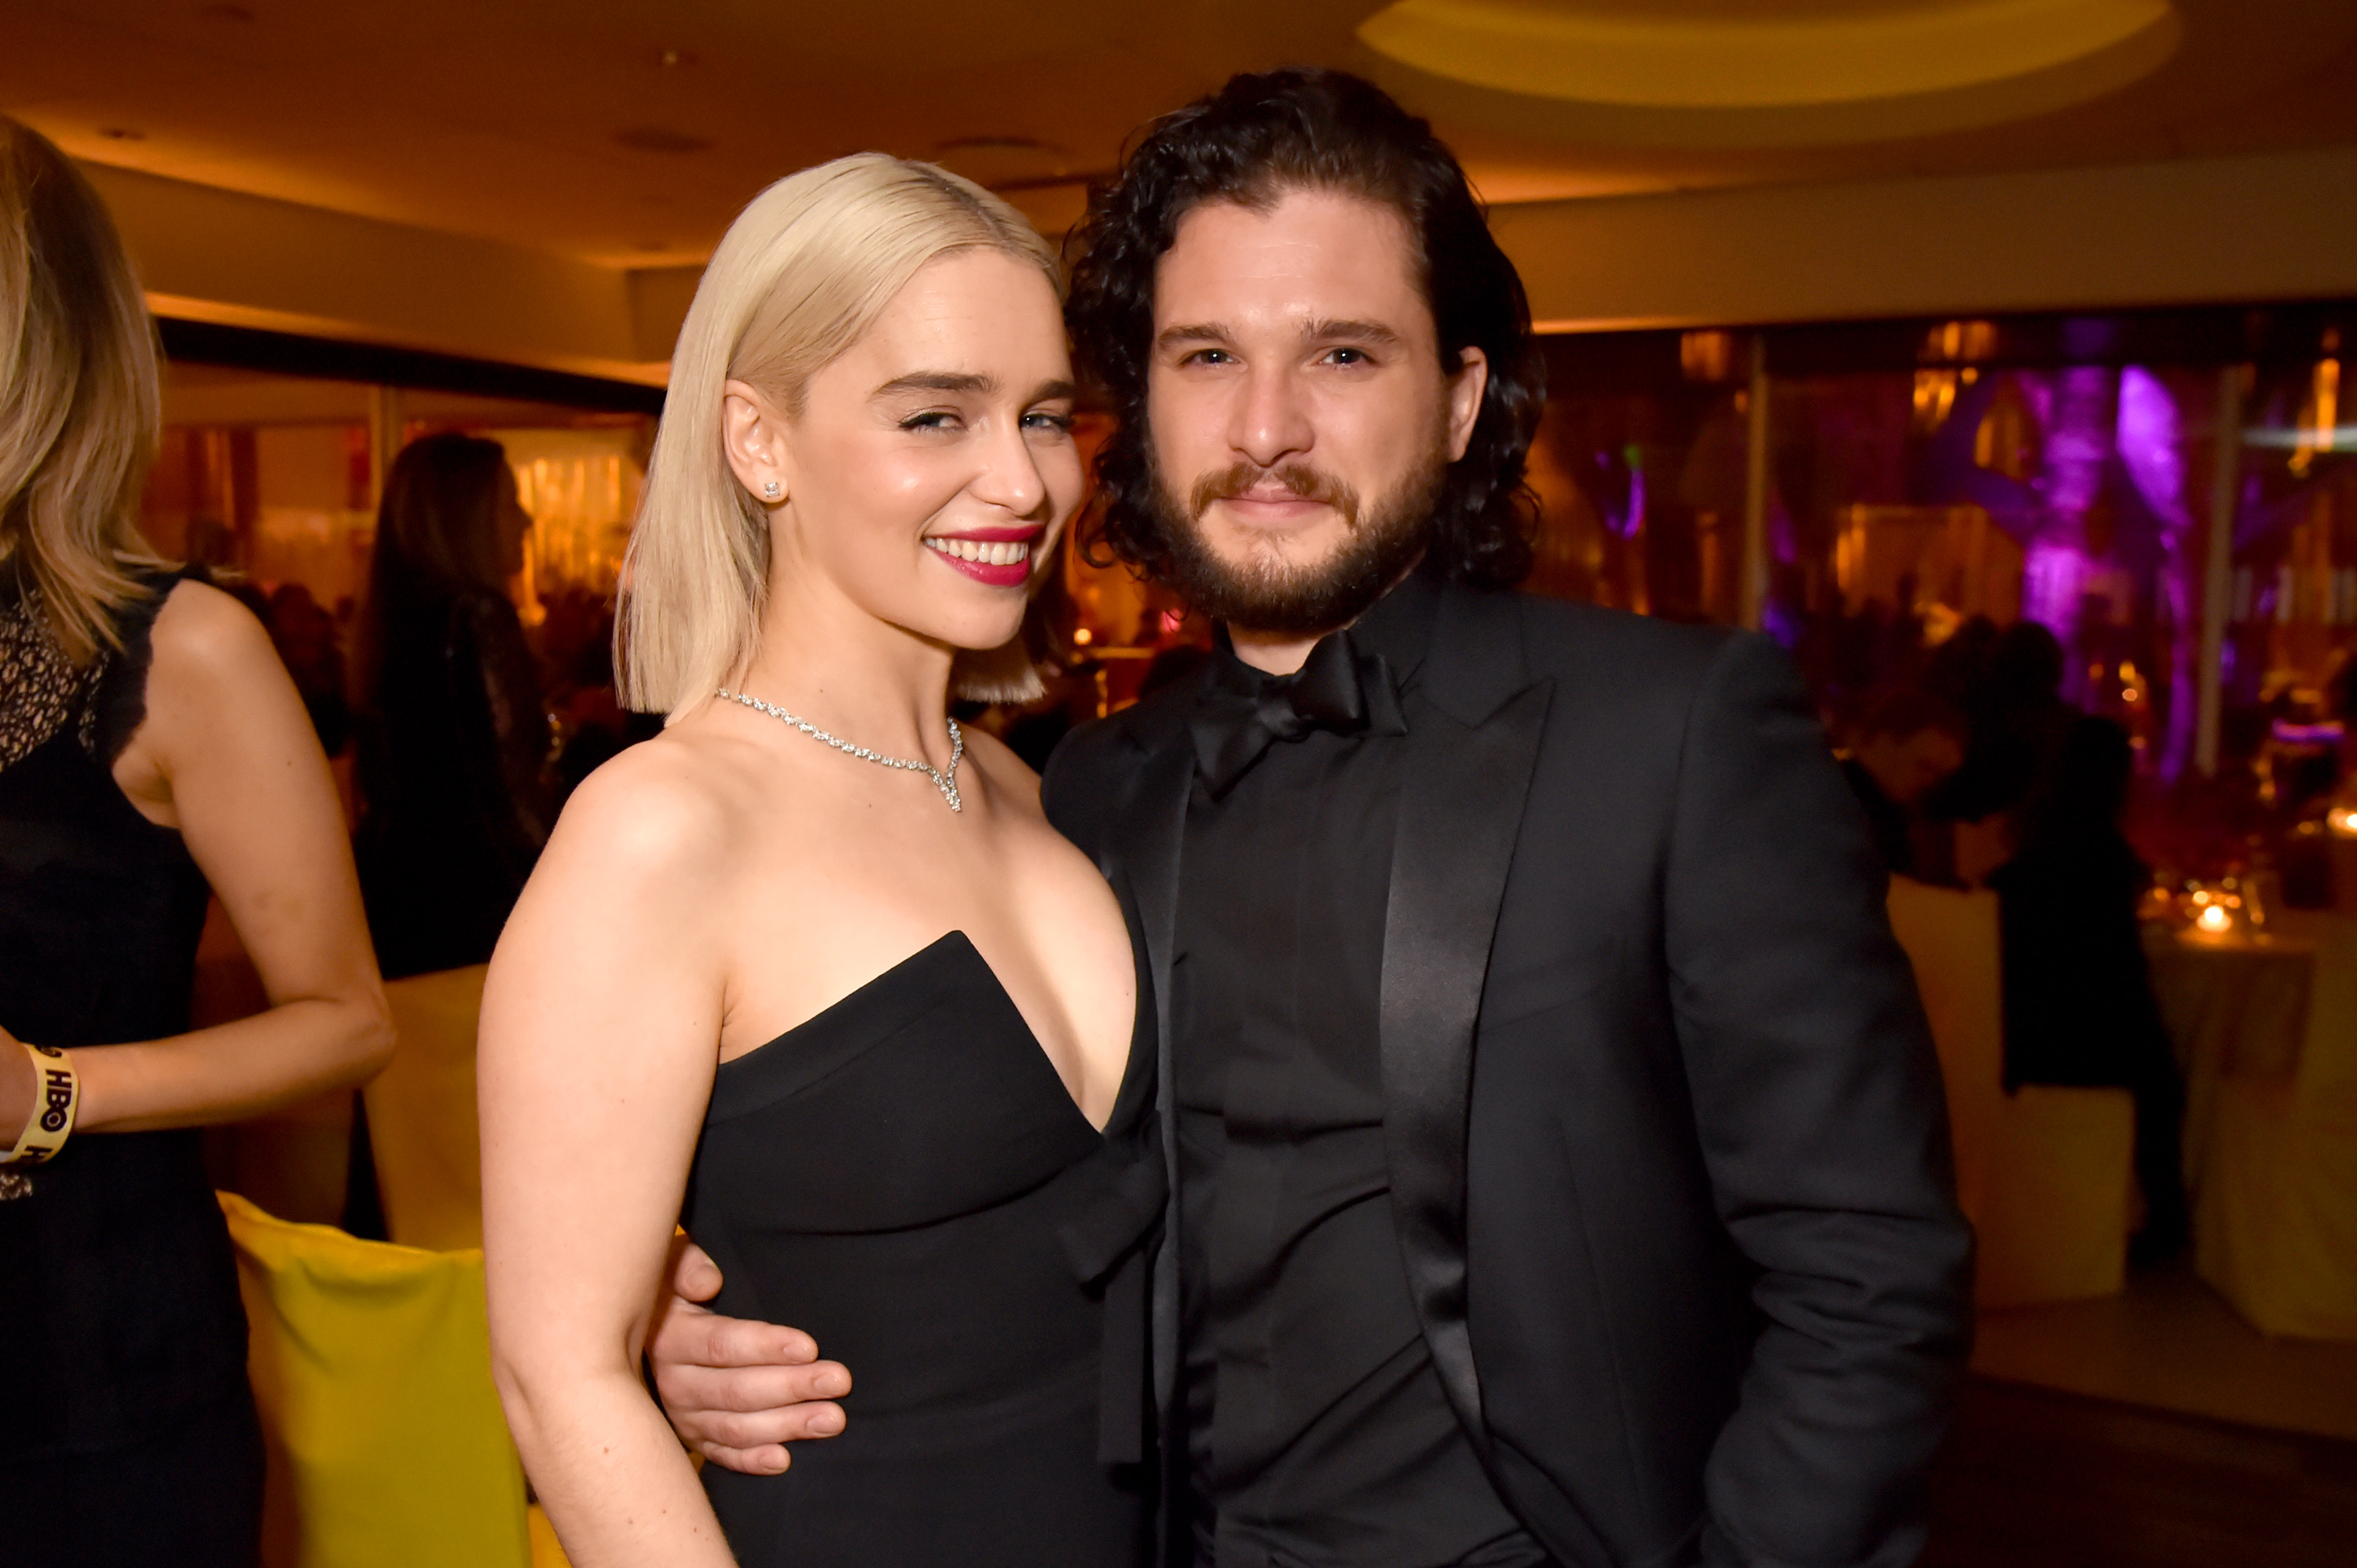 LOS ANGELES, CA - JANUARY 07:  Emilia Clarke and  Kit Harington of 'Game of Thrones' attends HBO's Official 2018 Golden Globe Awards After Party on January 7, 2018 in Los Angeles, California.  (Photo by Jeff Kravitz/FilmMagic for HBO)